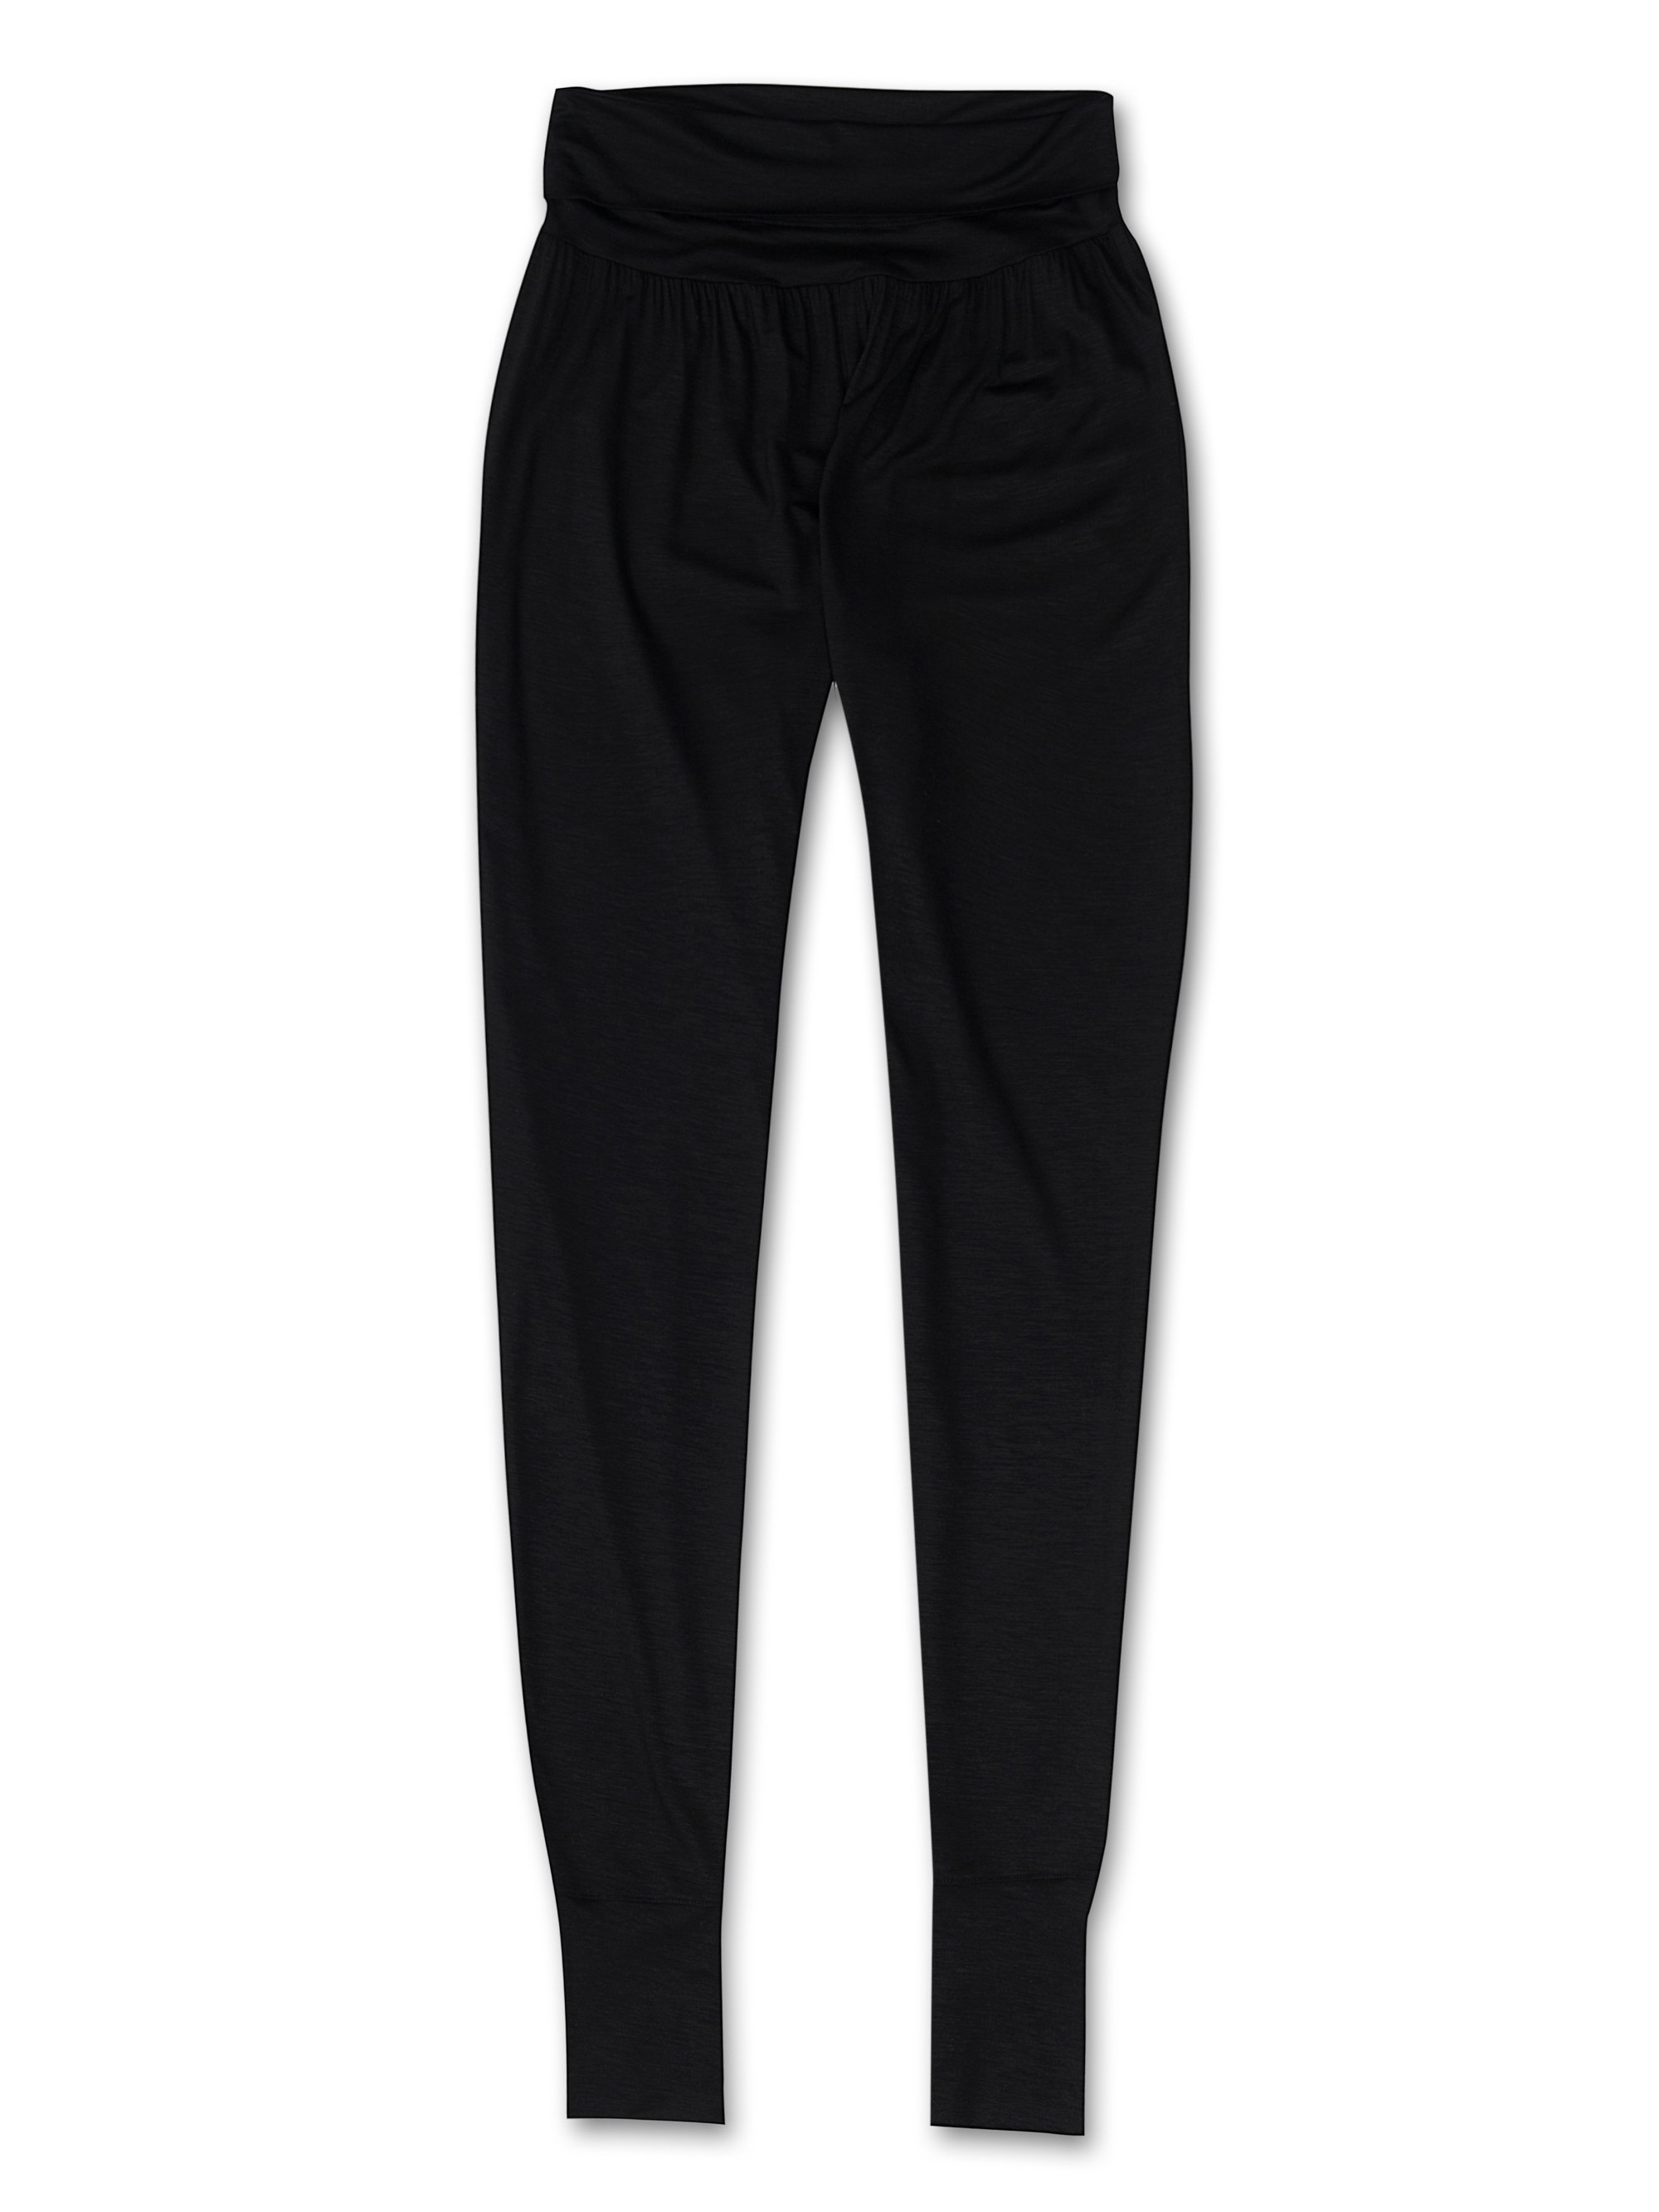 Women's Tapered Lounge Trousers Carla Micro Modal Stretch Black